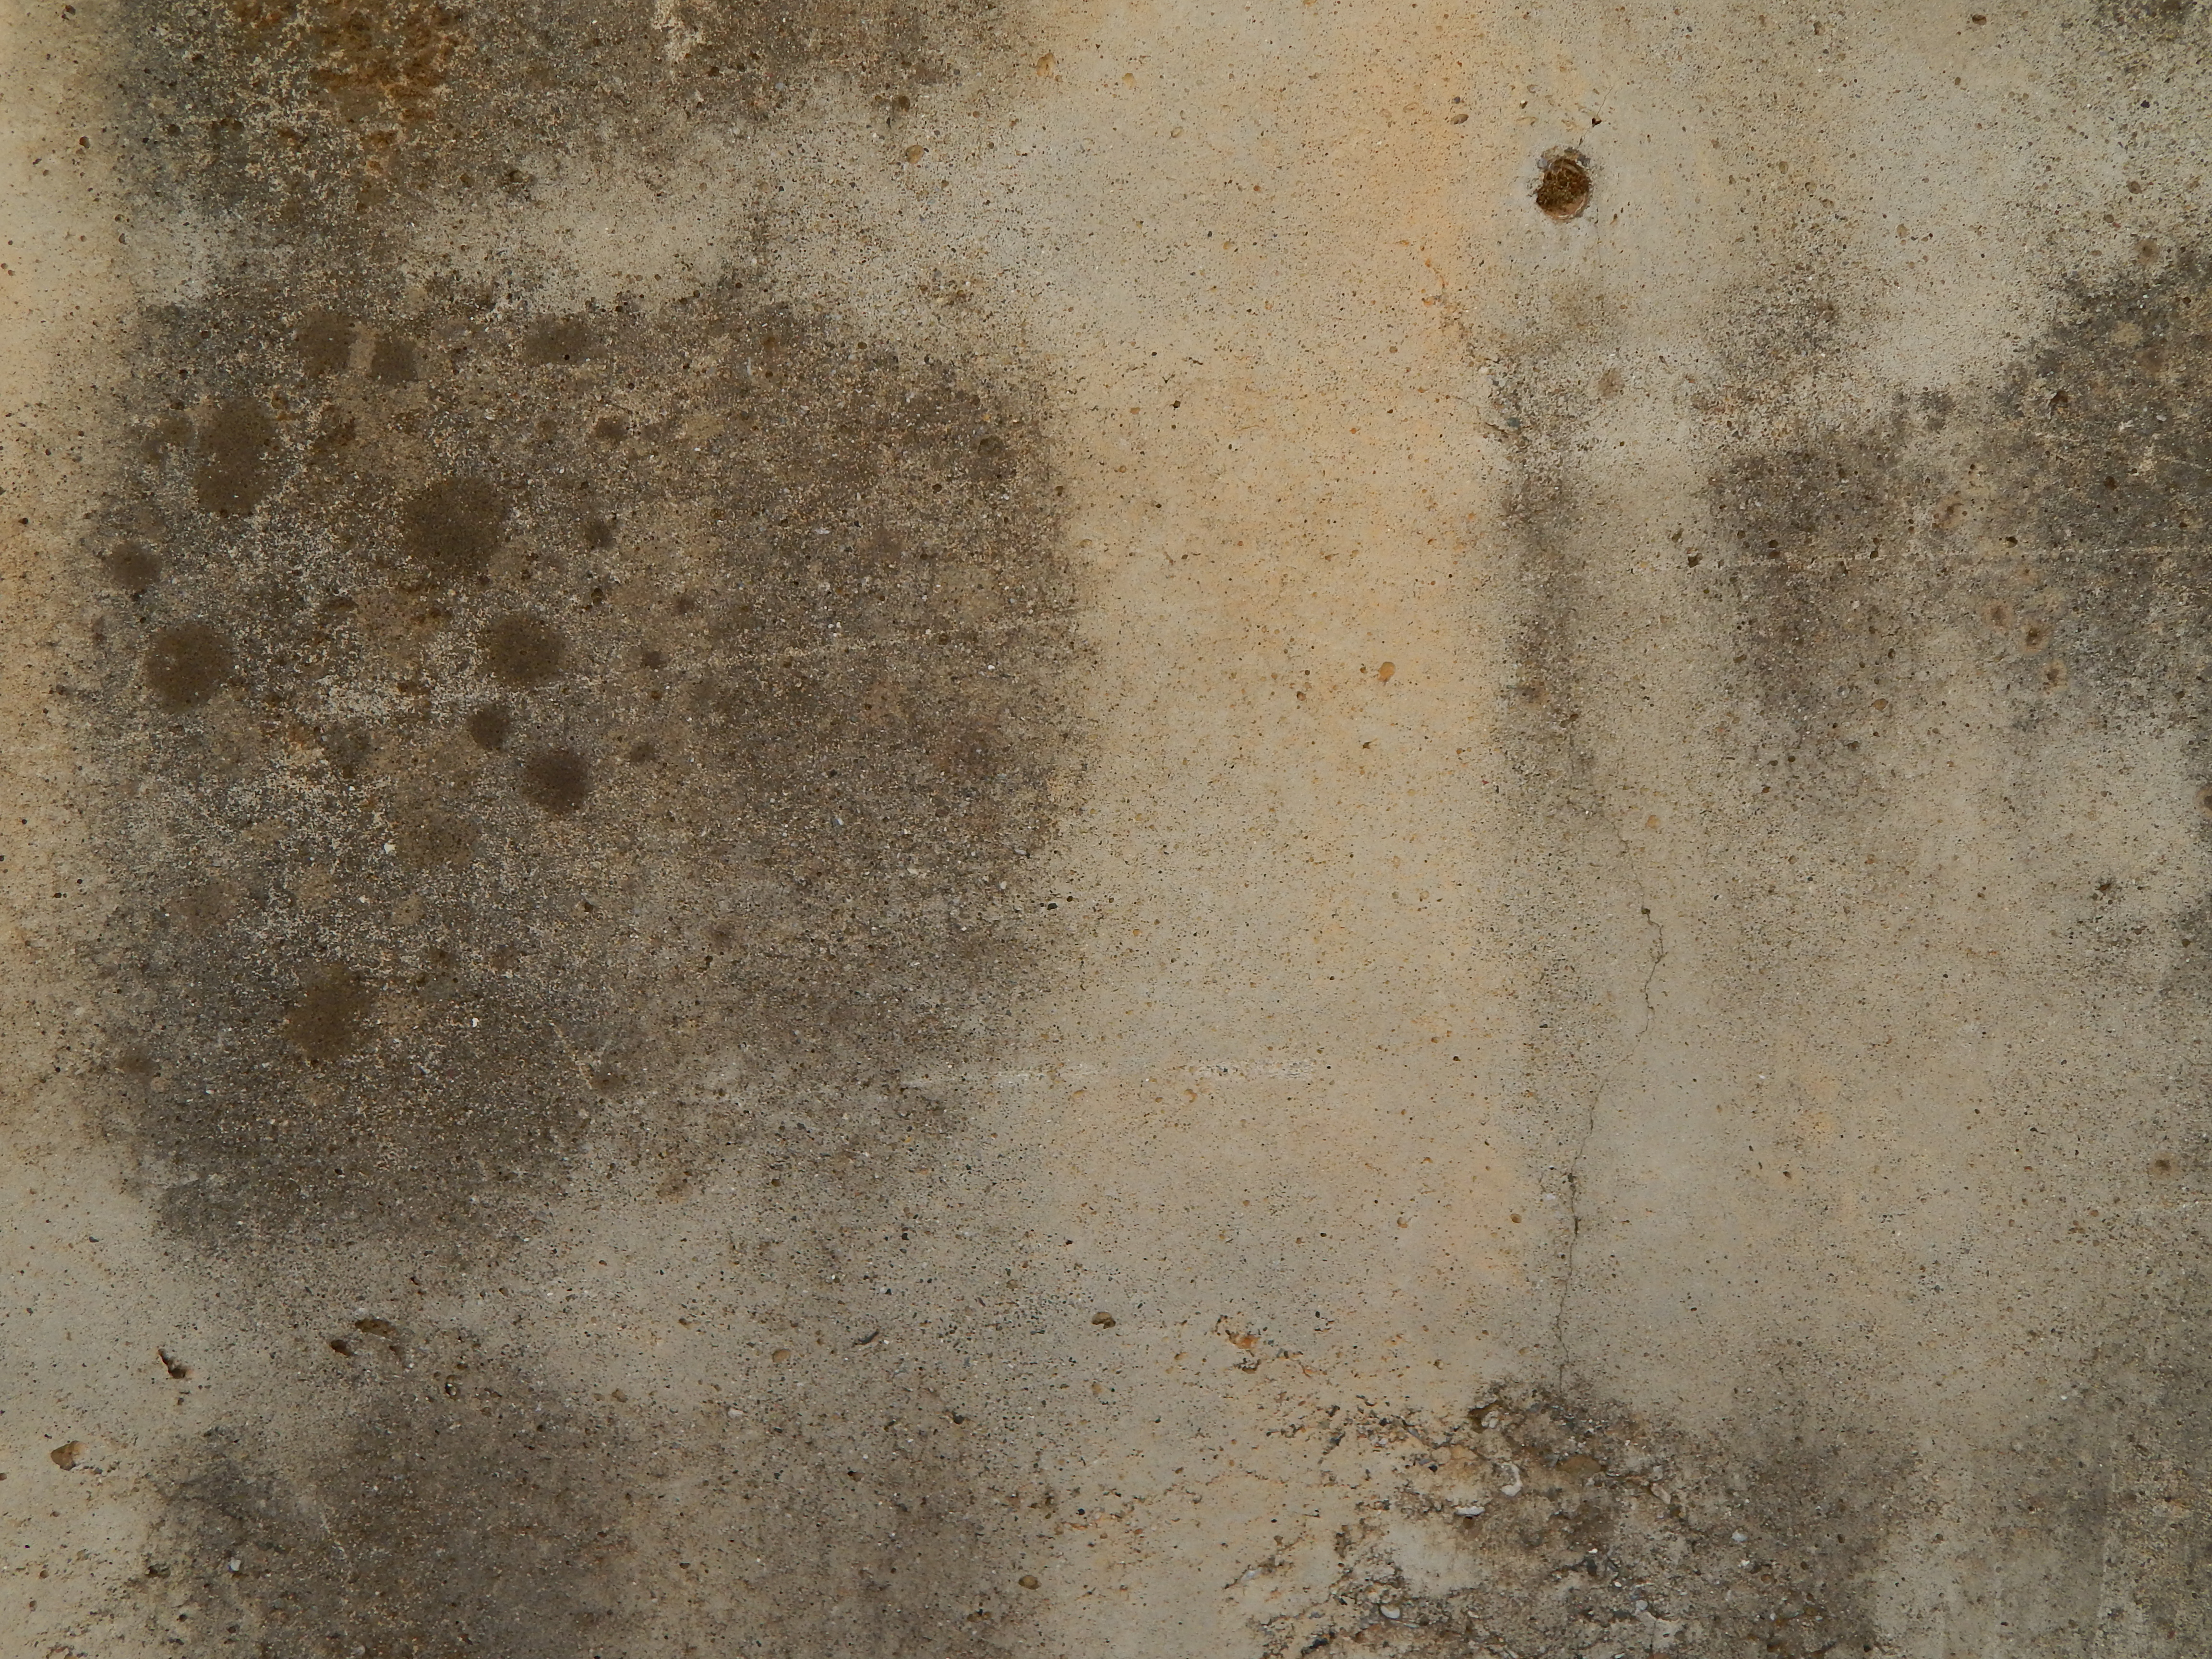 Top 5 Best Mold Removal Companies in Montgomery, AL